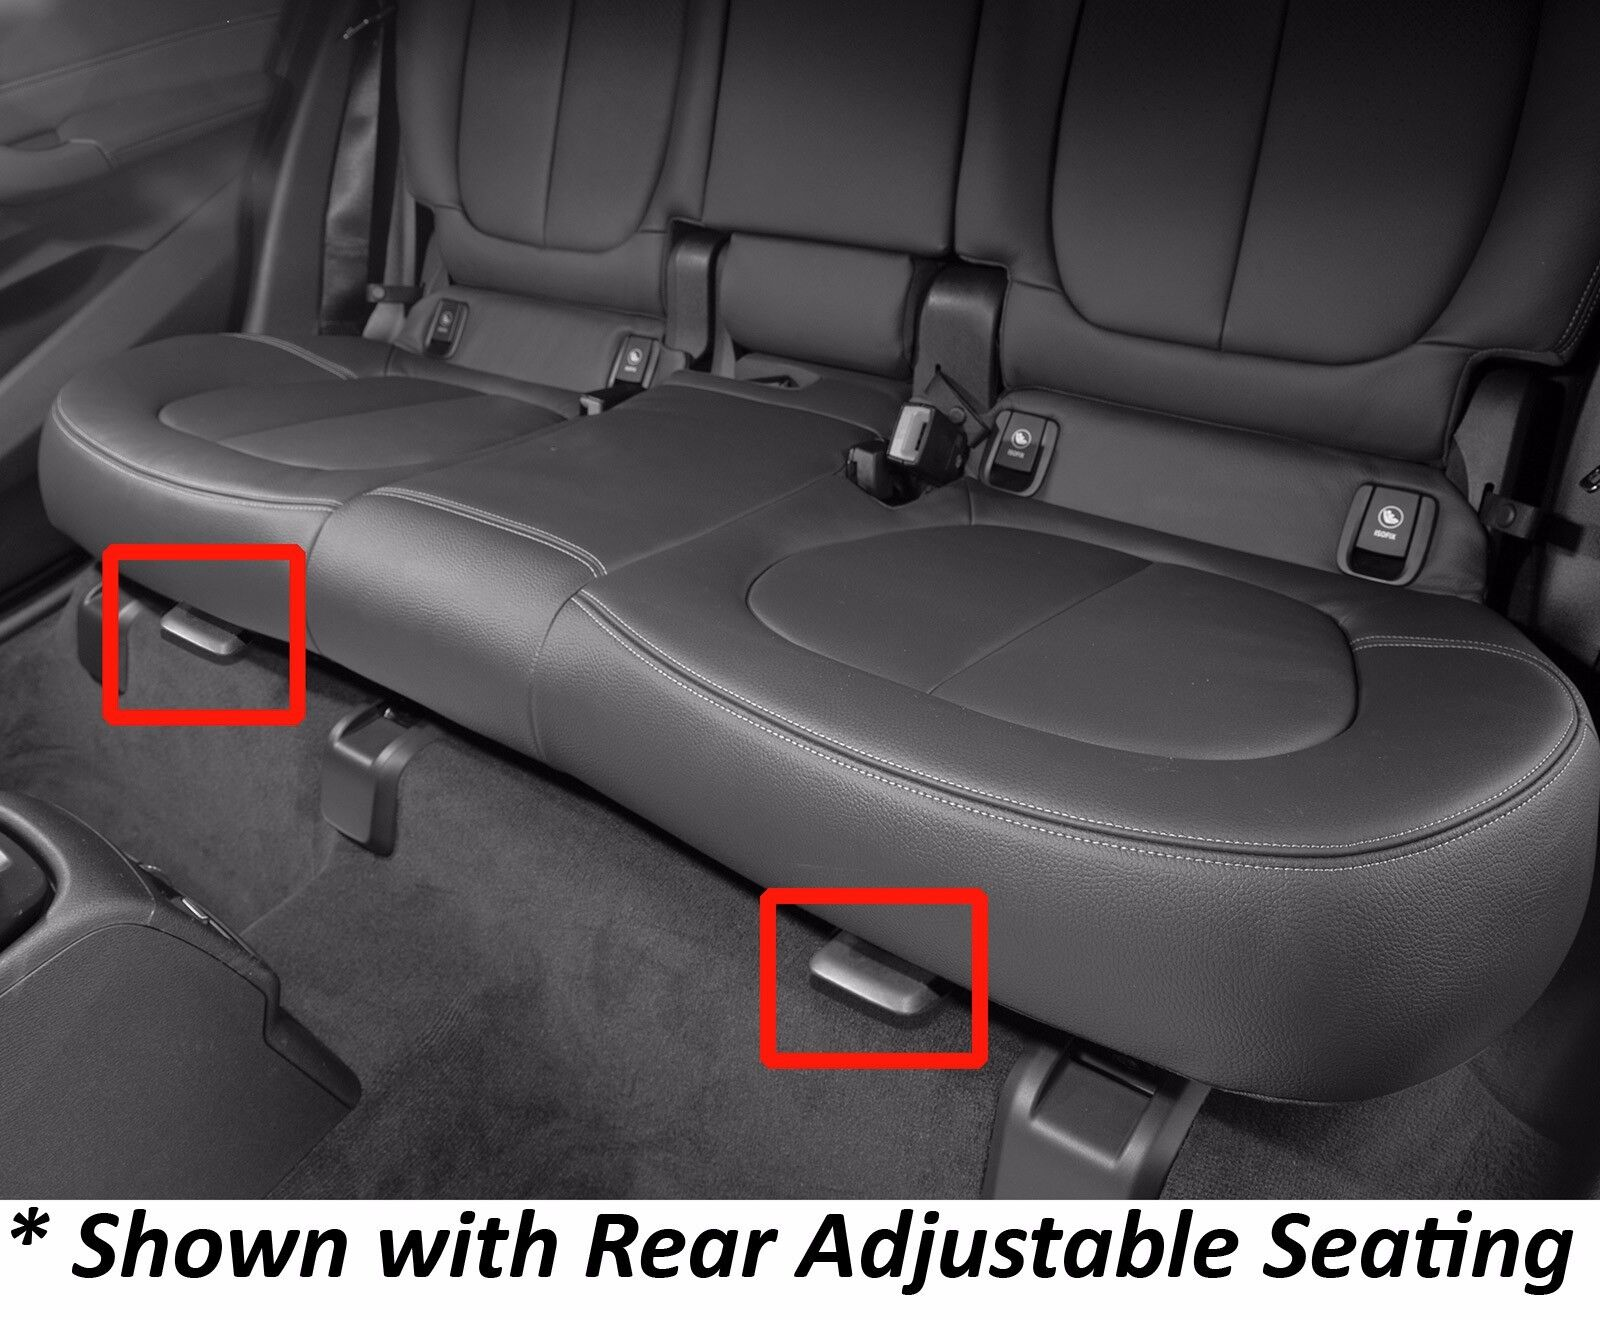 WeatherTech Cargo Liner for BMW X1 w//o Rear Adjustable Seats Black 2016-2018